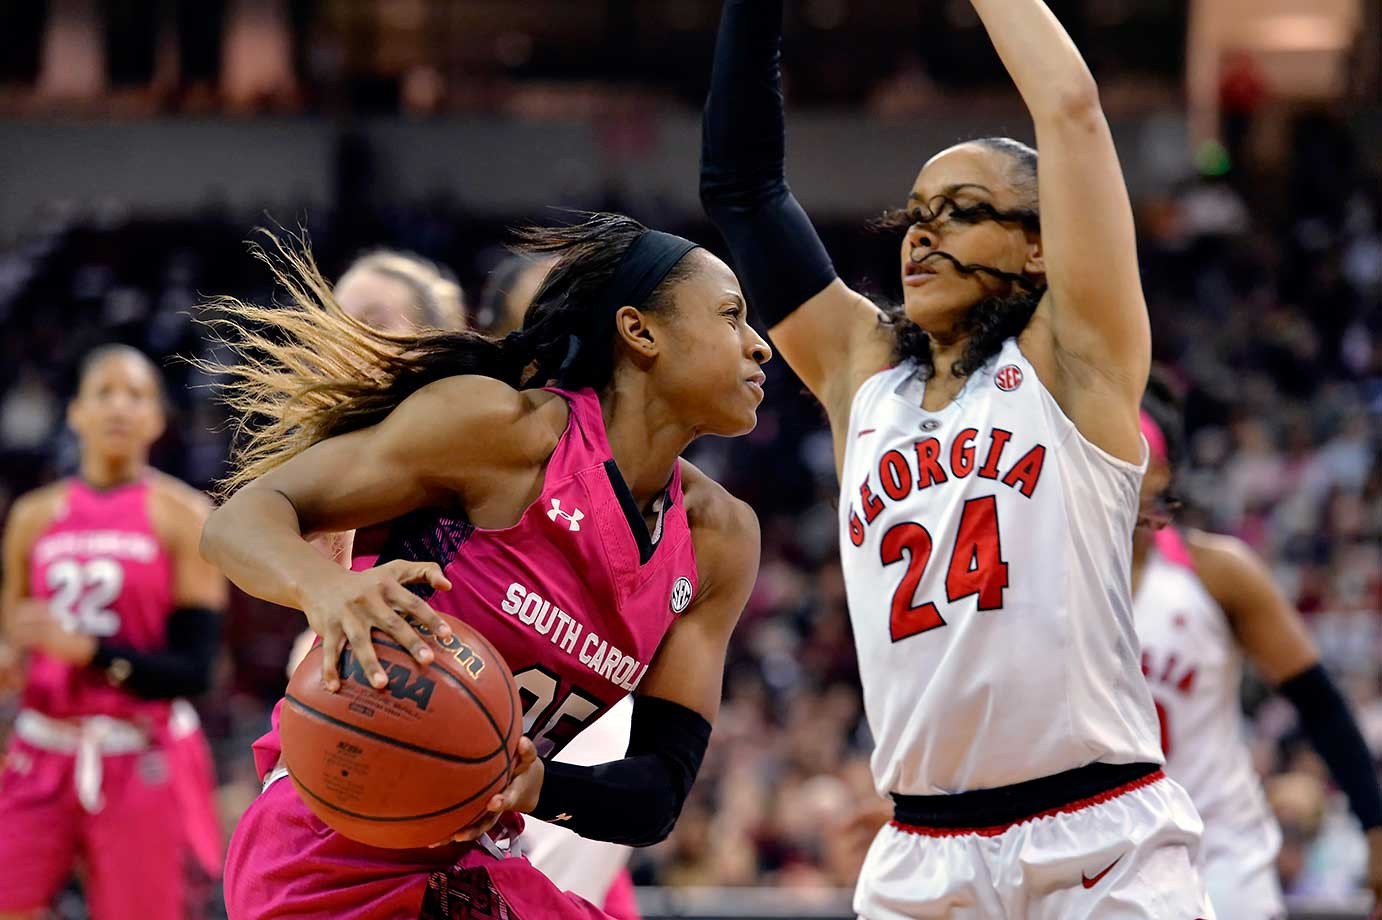 South Carolina's Tiffany Mitchell drives against Georgia's Marjorie Butler during a 61-51 home win.